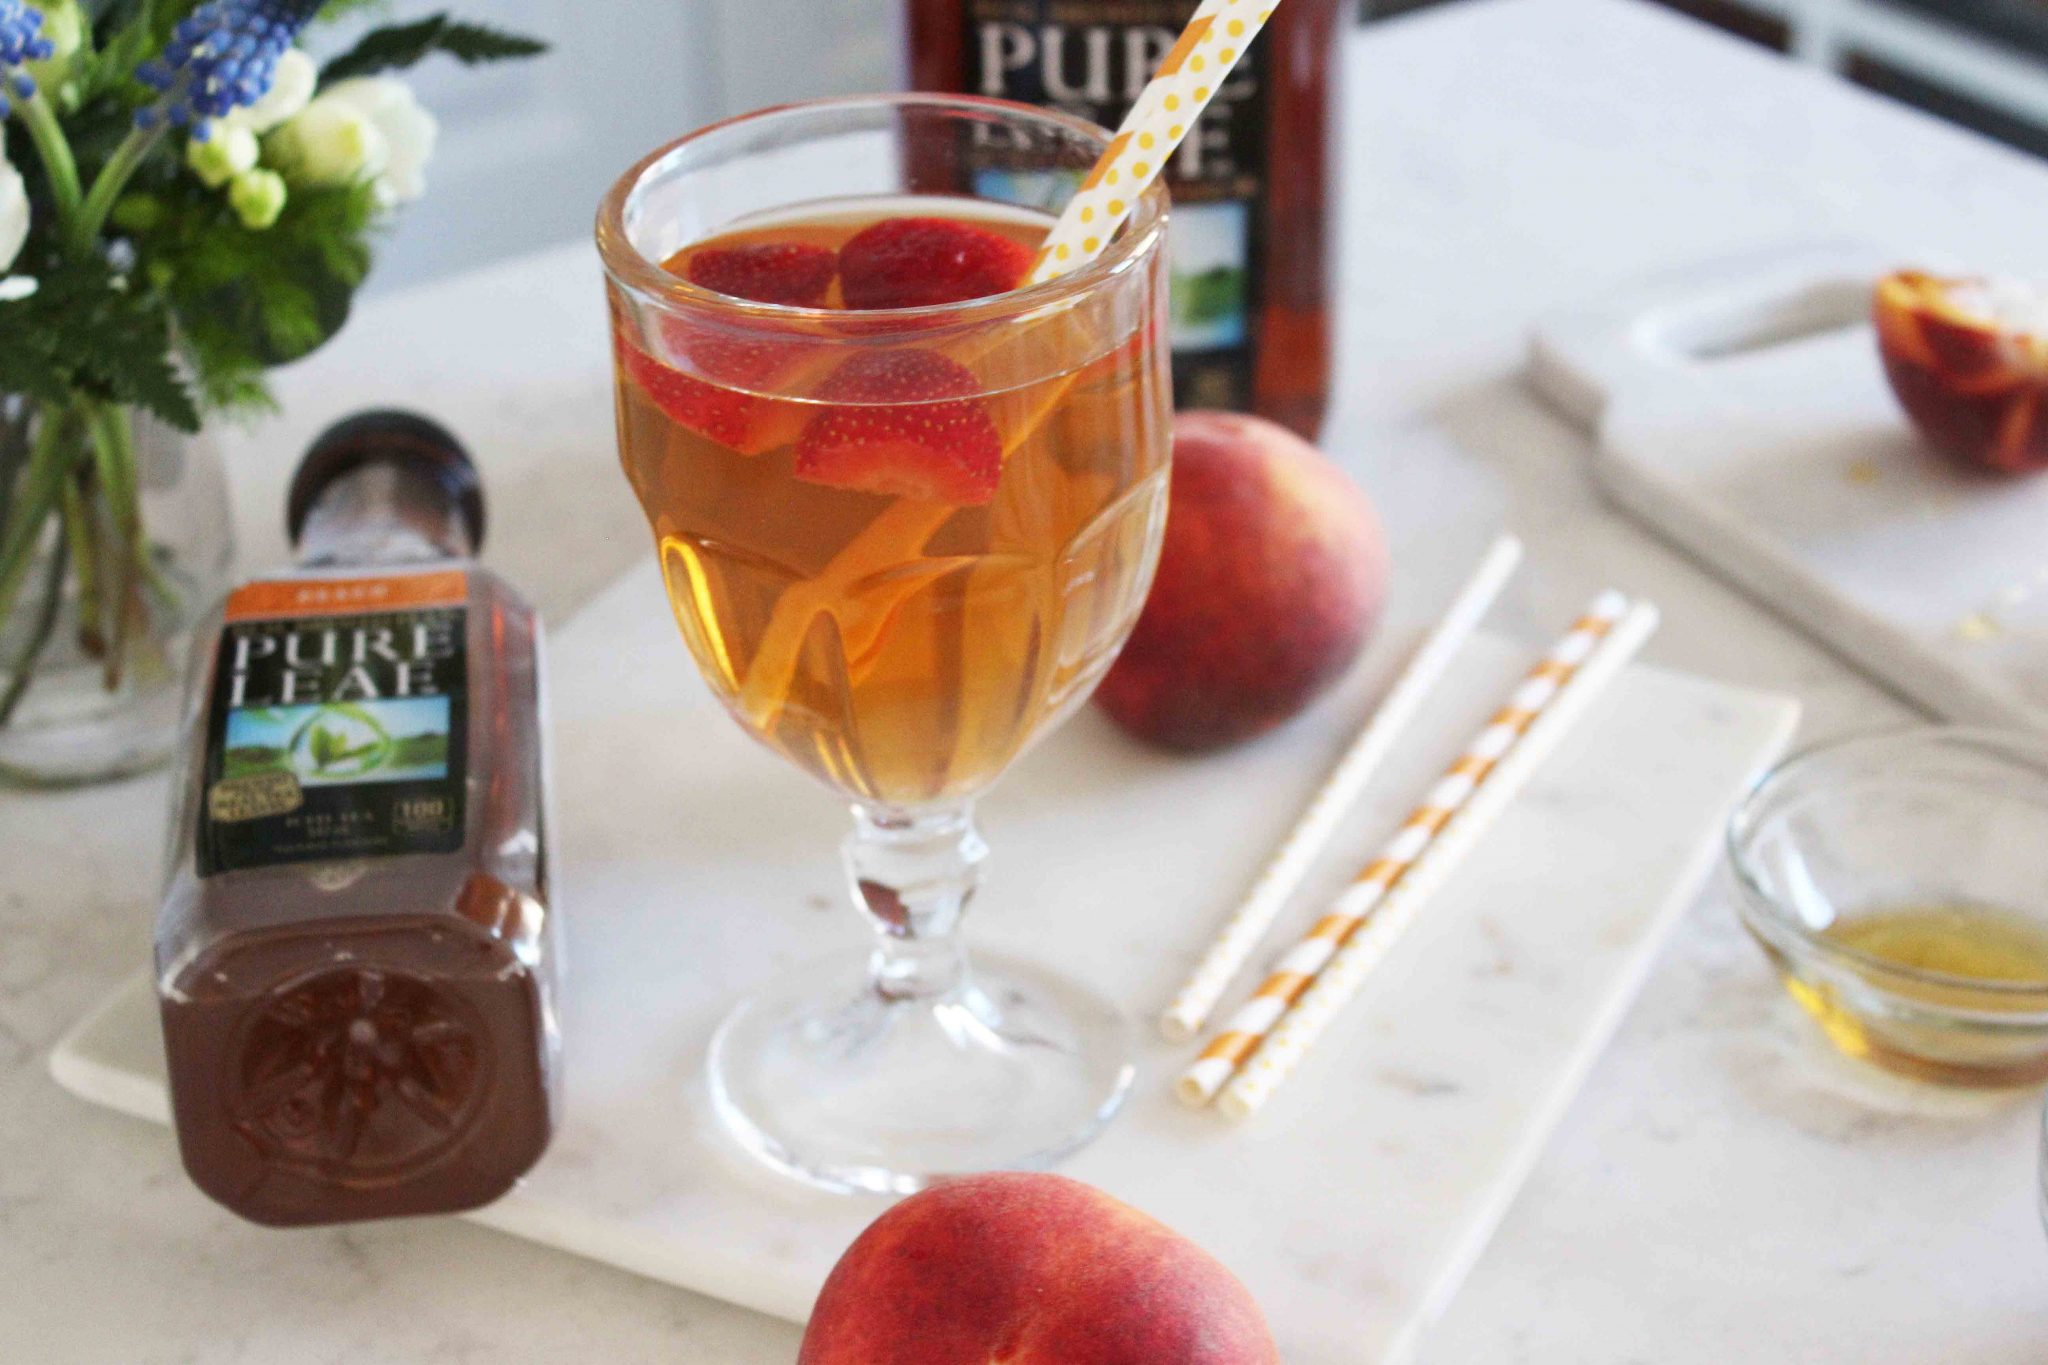 Pure Leaf Peach Tea Cocktails